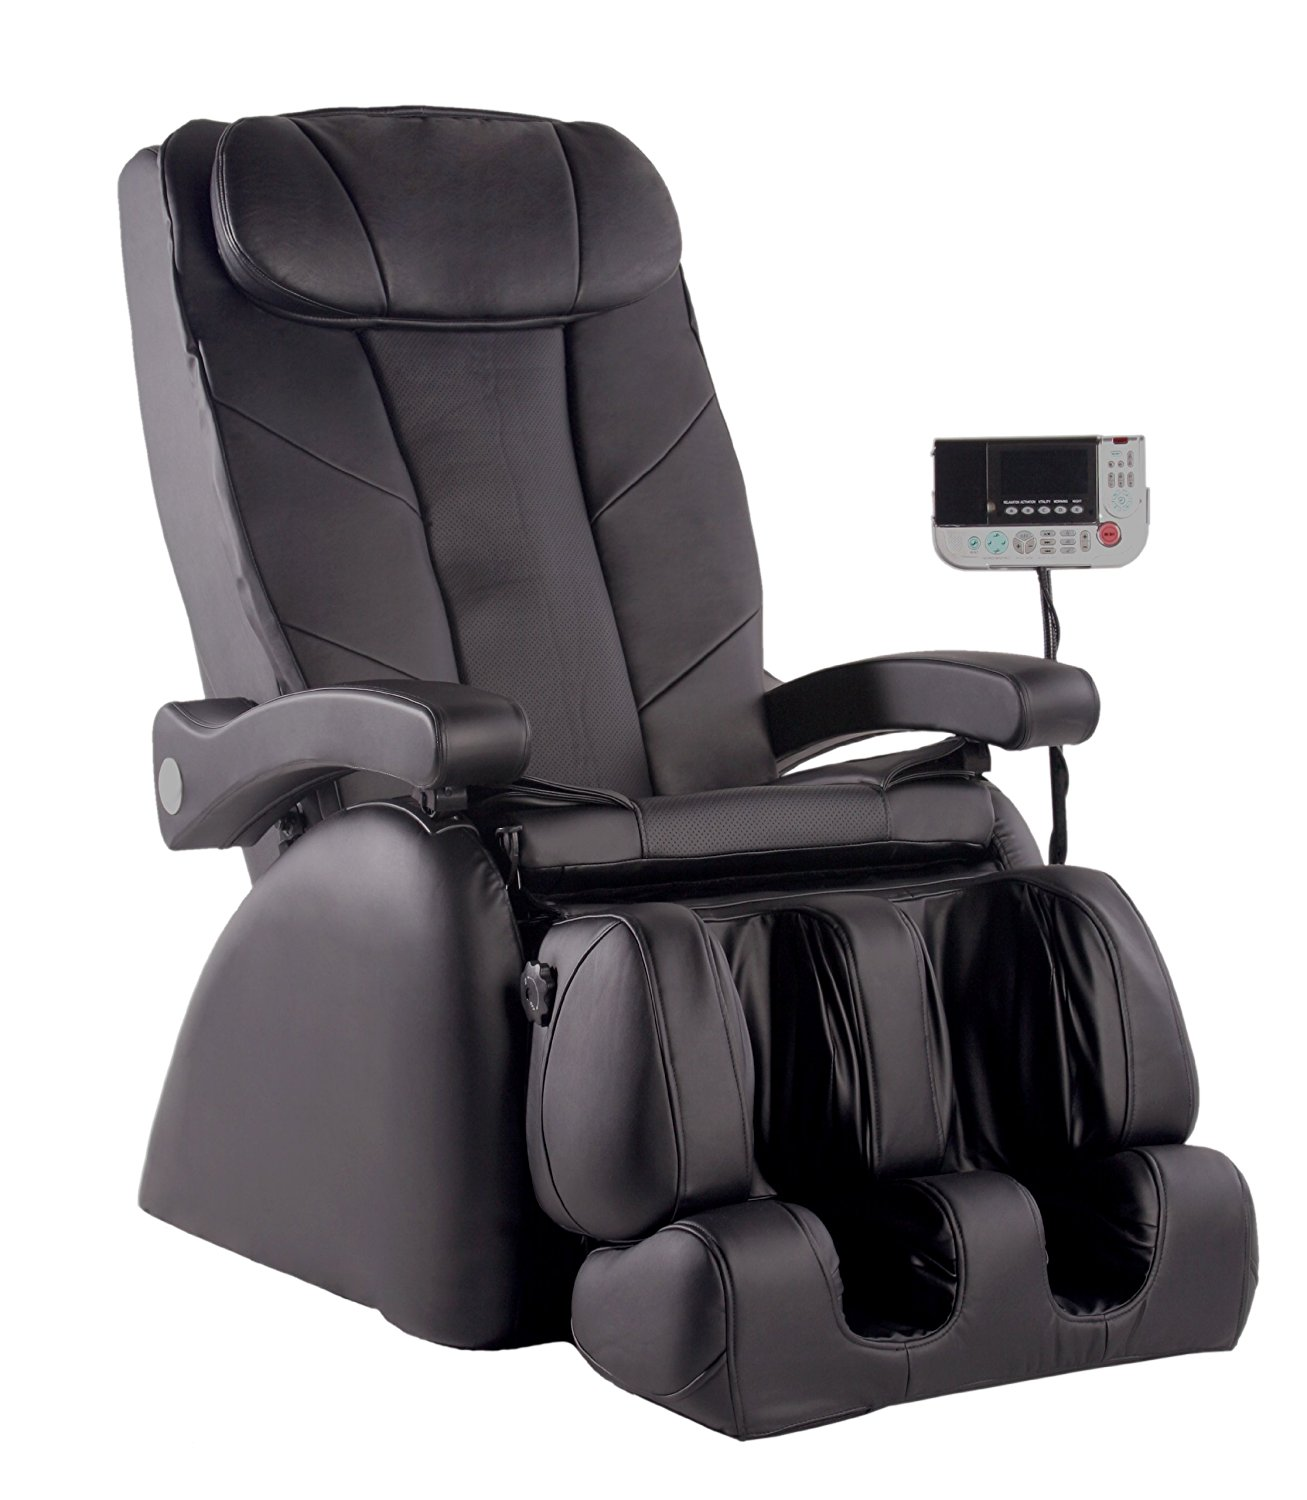 Omega MEBLK Model ME-1 Montage Elite Massage Chair, Black; 5 Automatic Programs including Relaxation, Activation, Vitality, Night, Morning; 4 levels of massage intensities (low, medium, high)